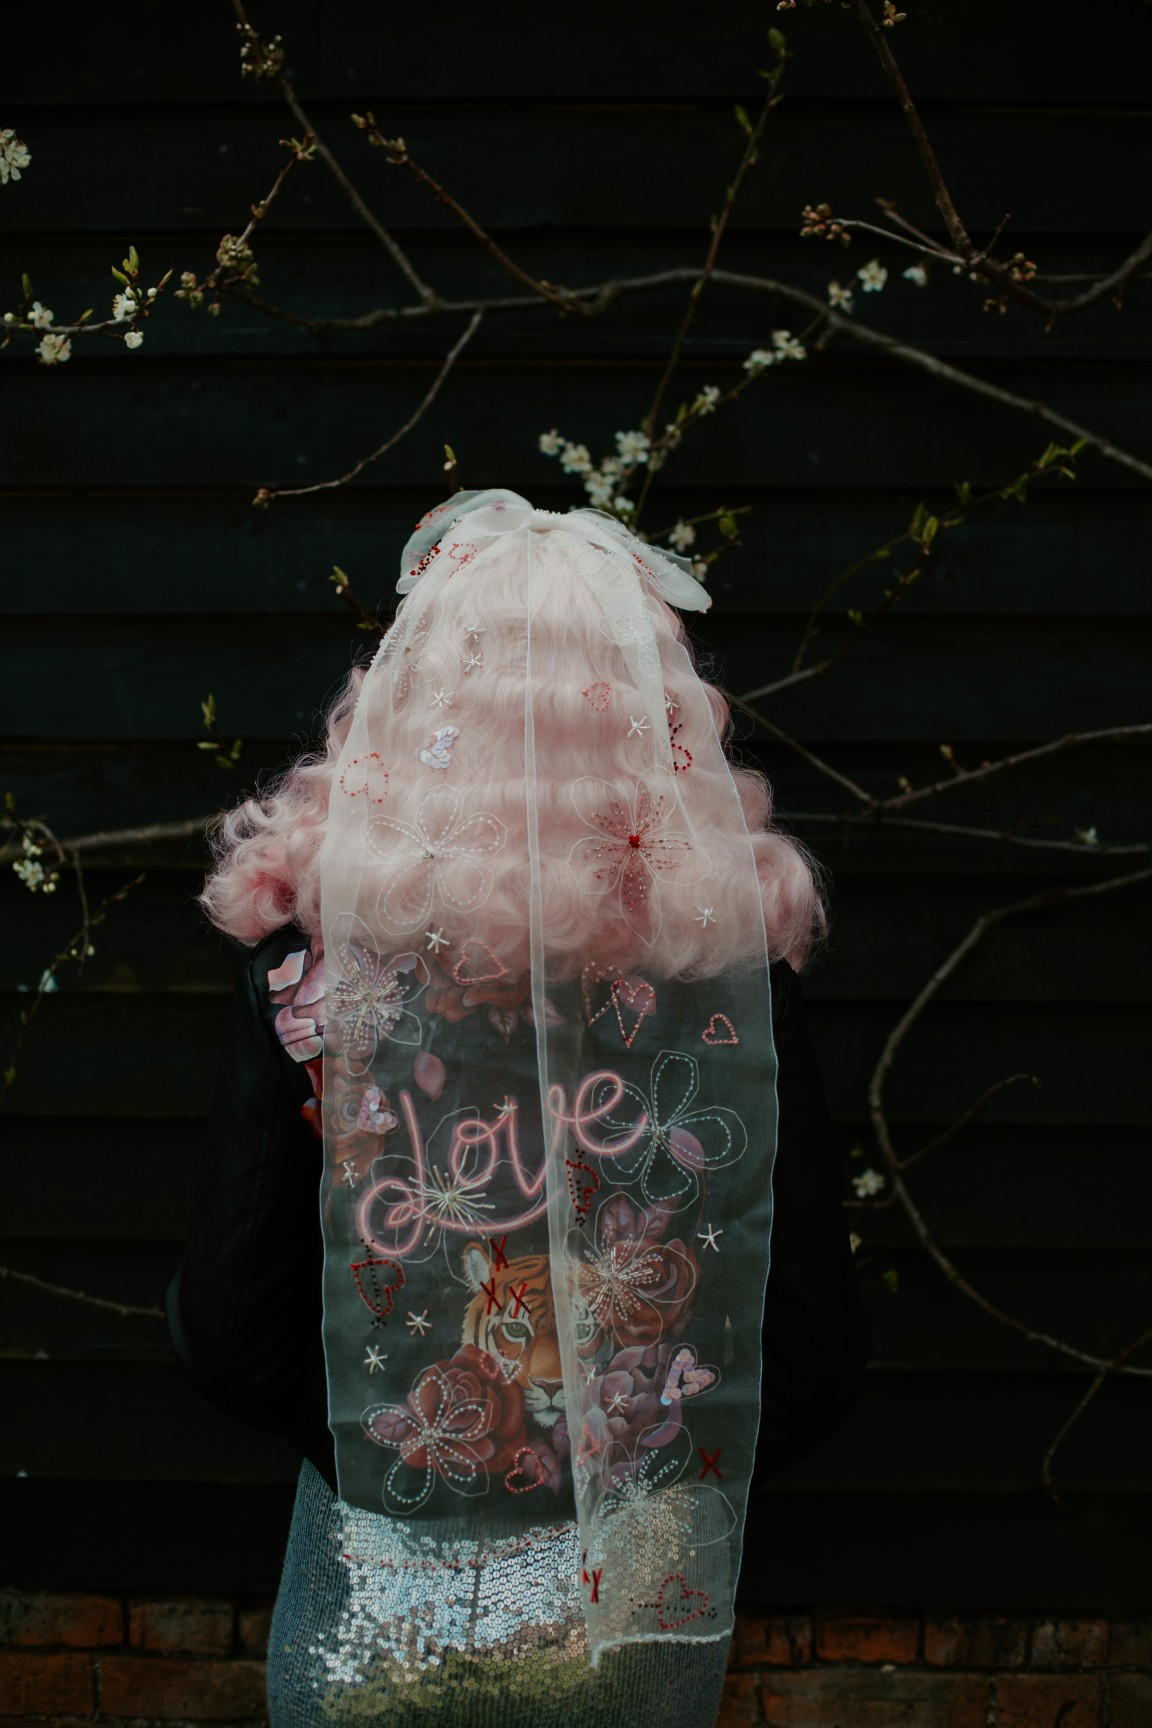 rock and roll wedding - edgy wedding inspiration - unique wedding veil - embroidered wedding veil - wedding hand painted leather jacket